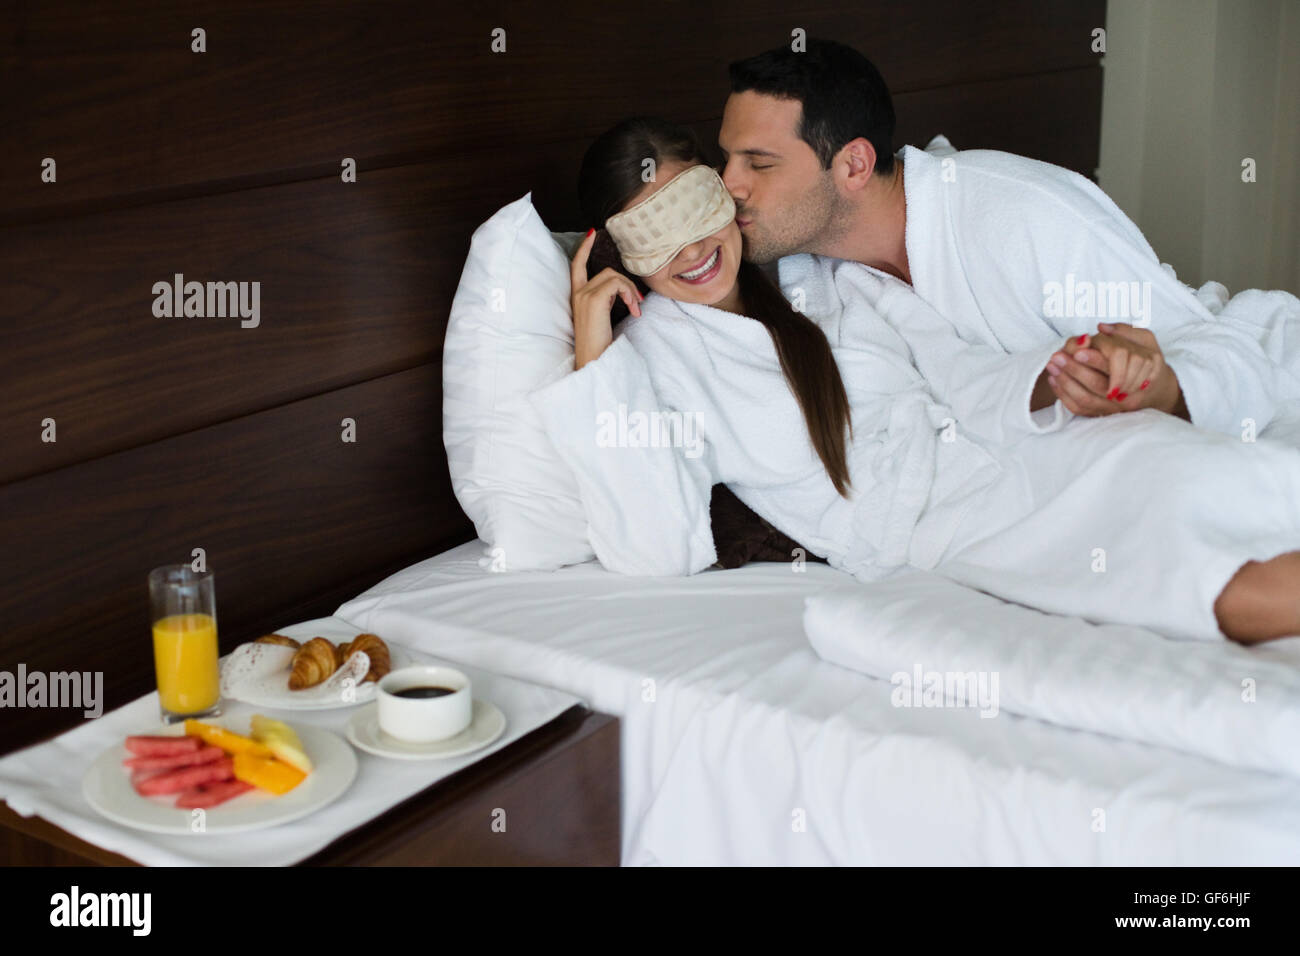 Man kissing woman in hotel room. - Stock Image